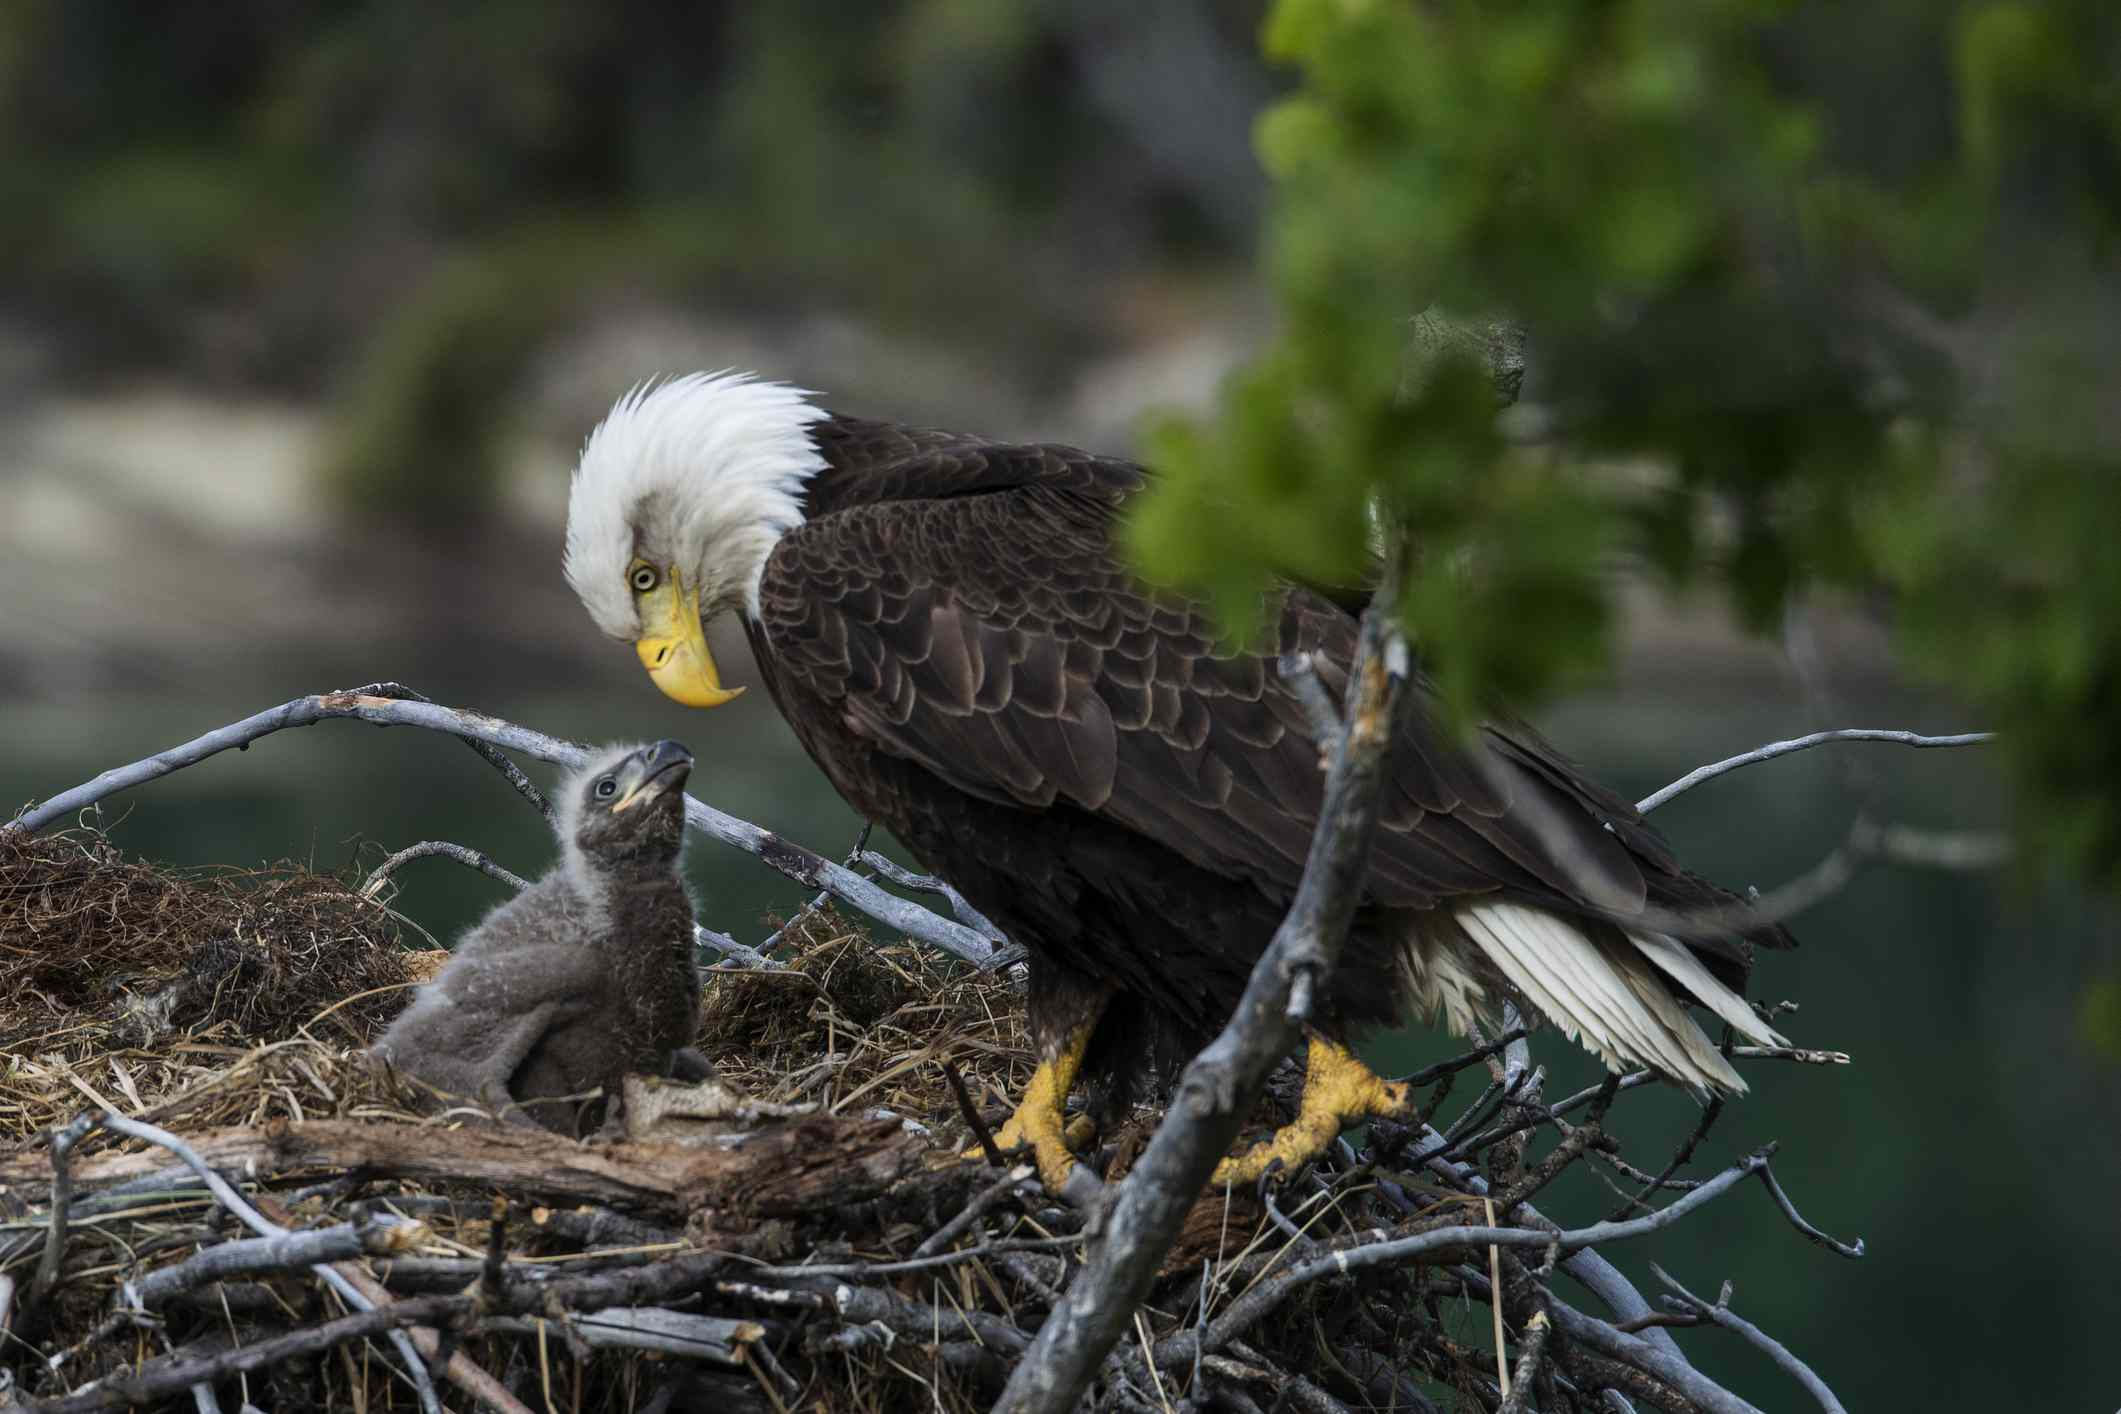 A bald eagle looking at a chick in a nest.